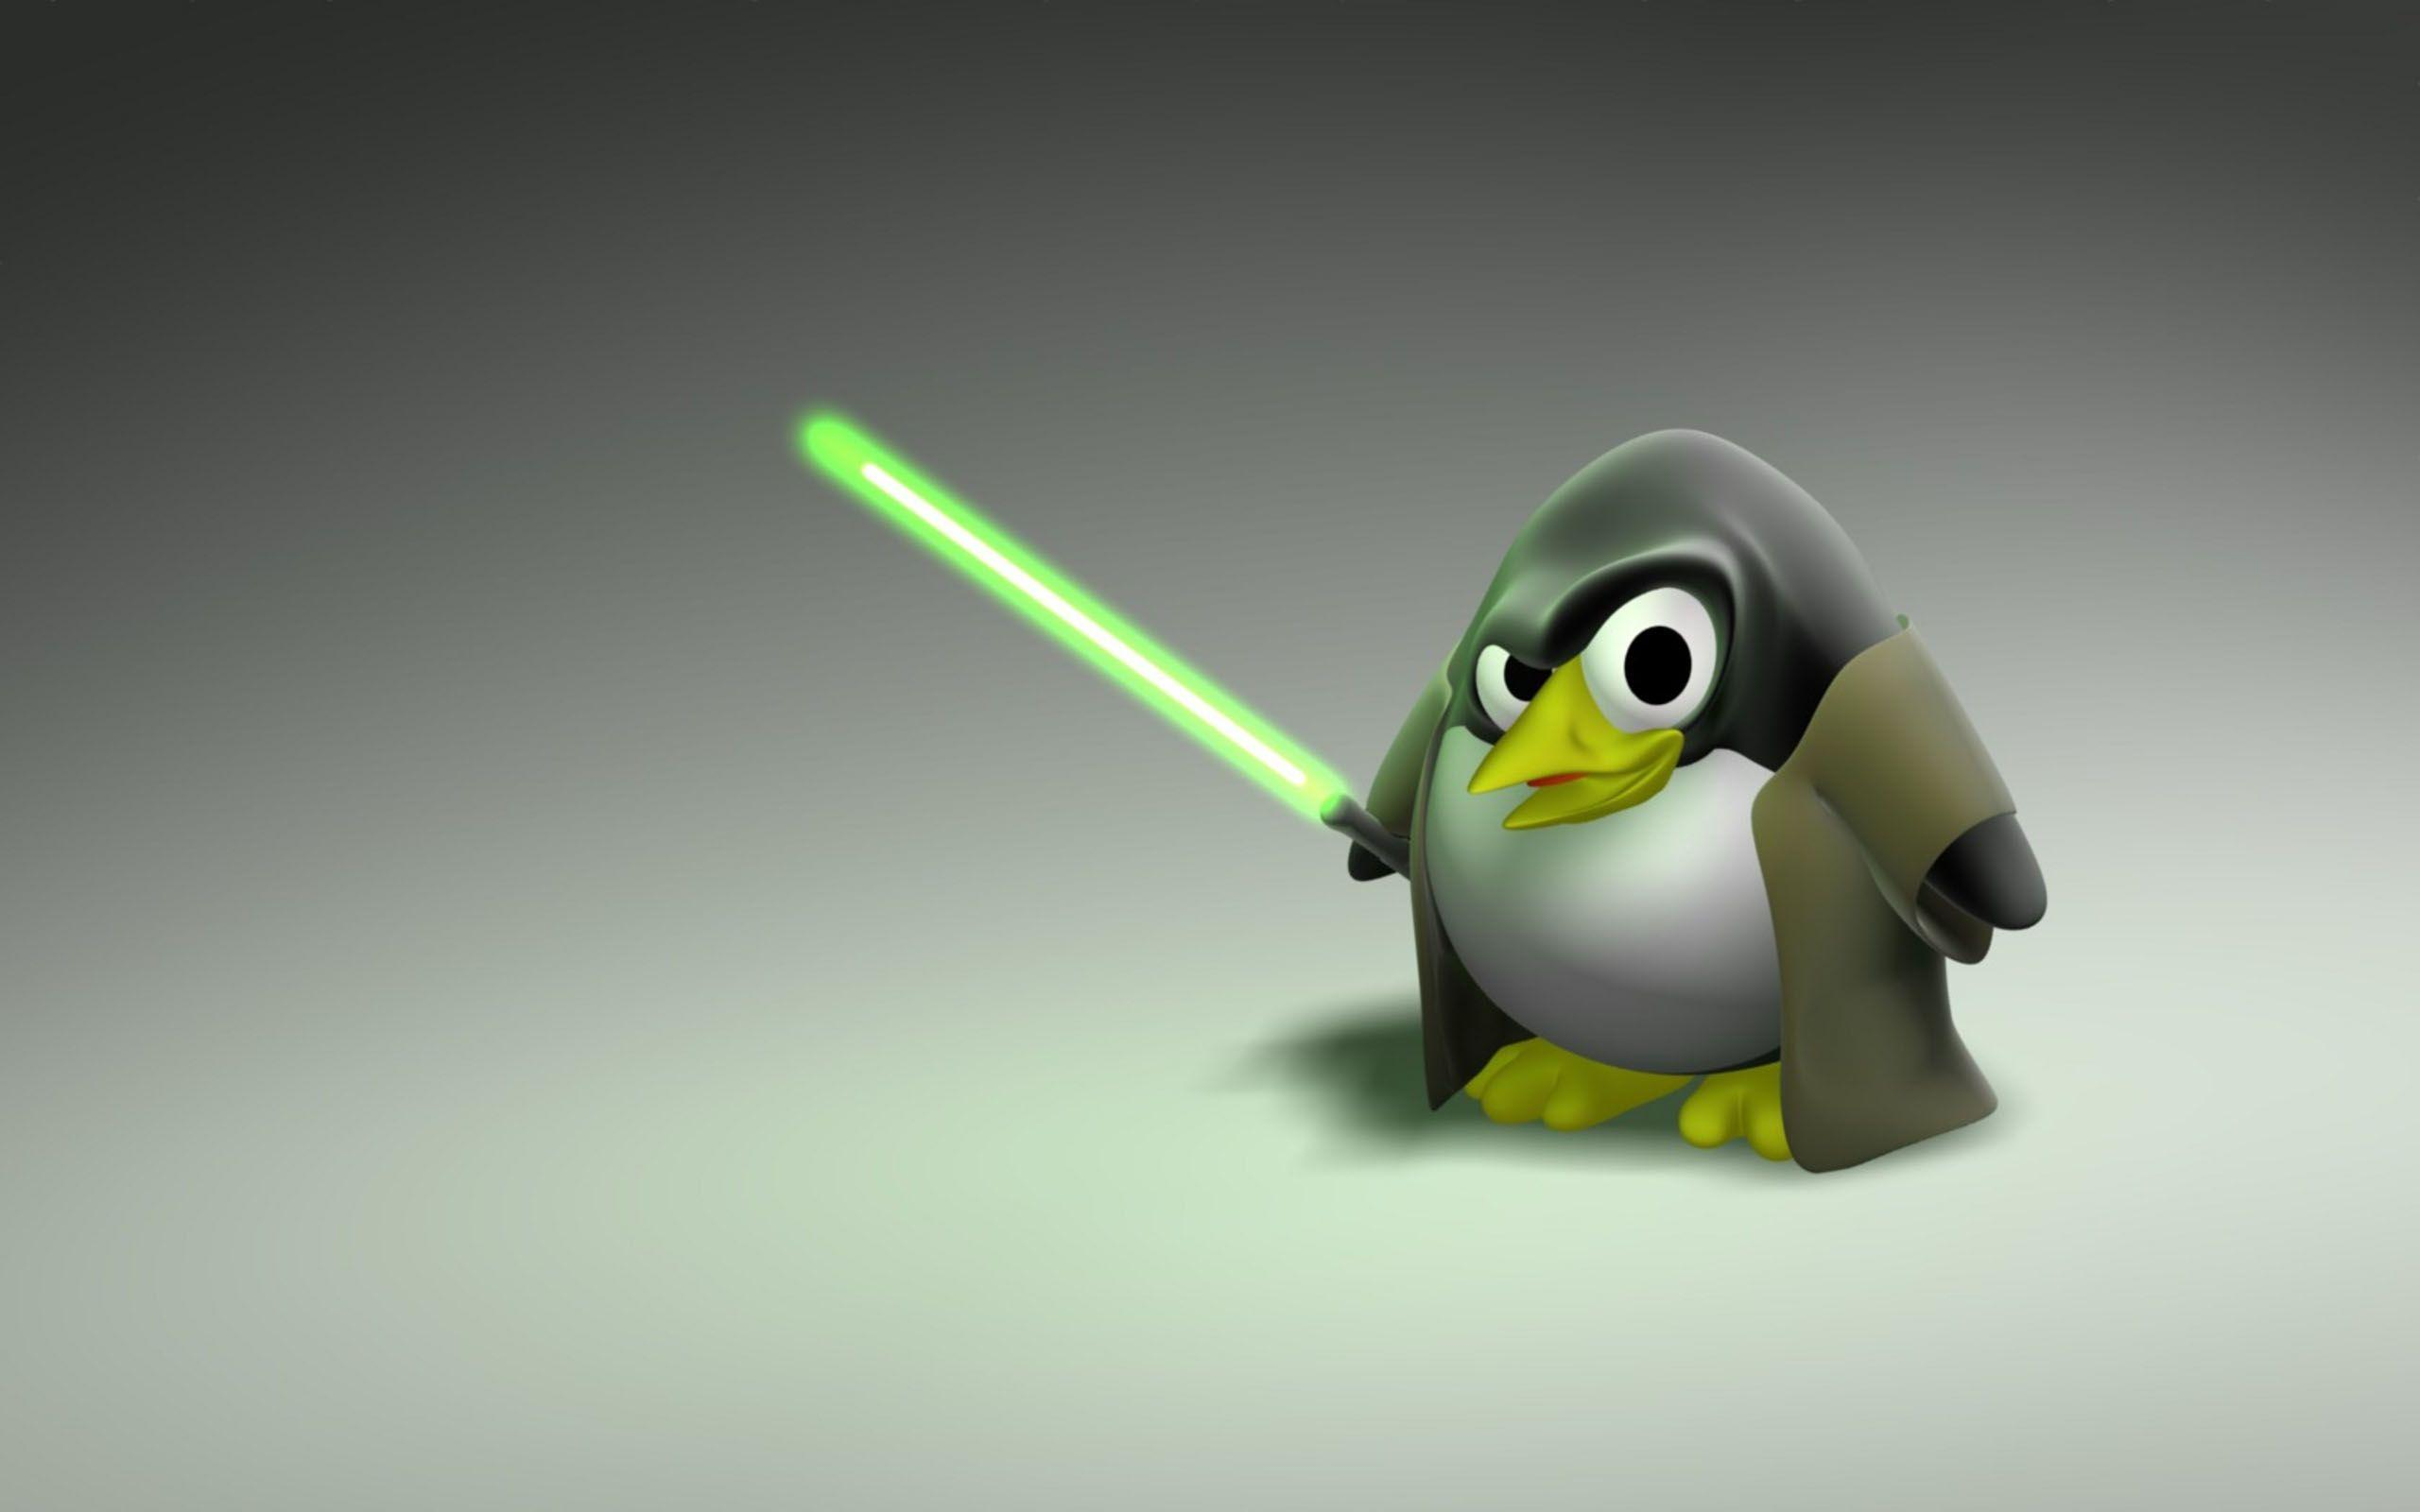 Cool Penguin Linux Wallpaper